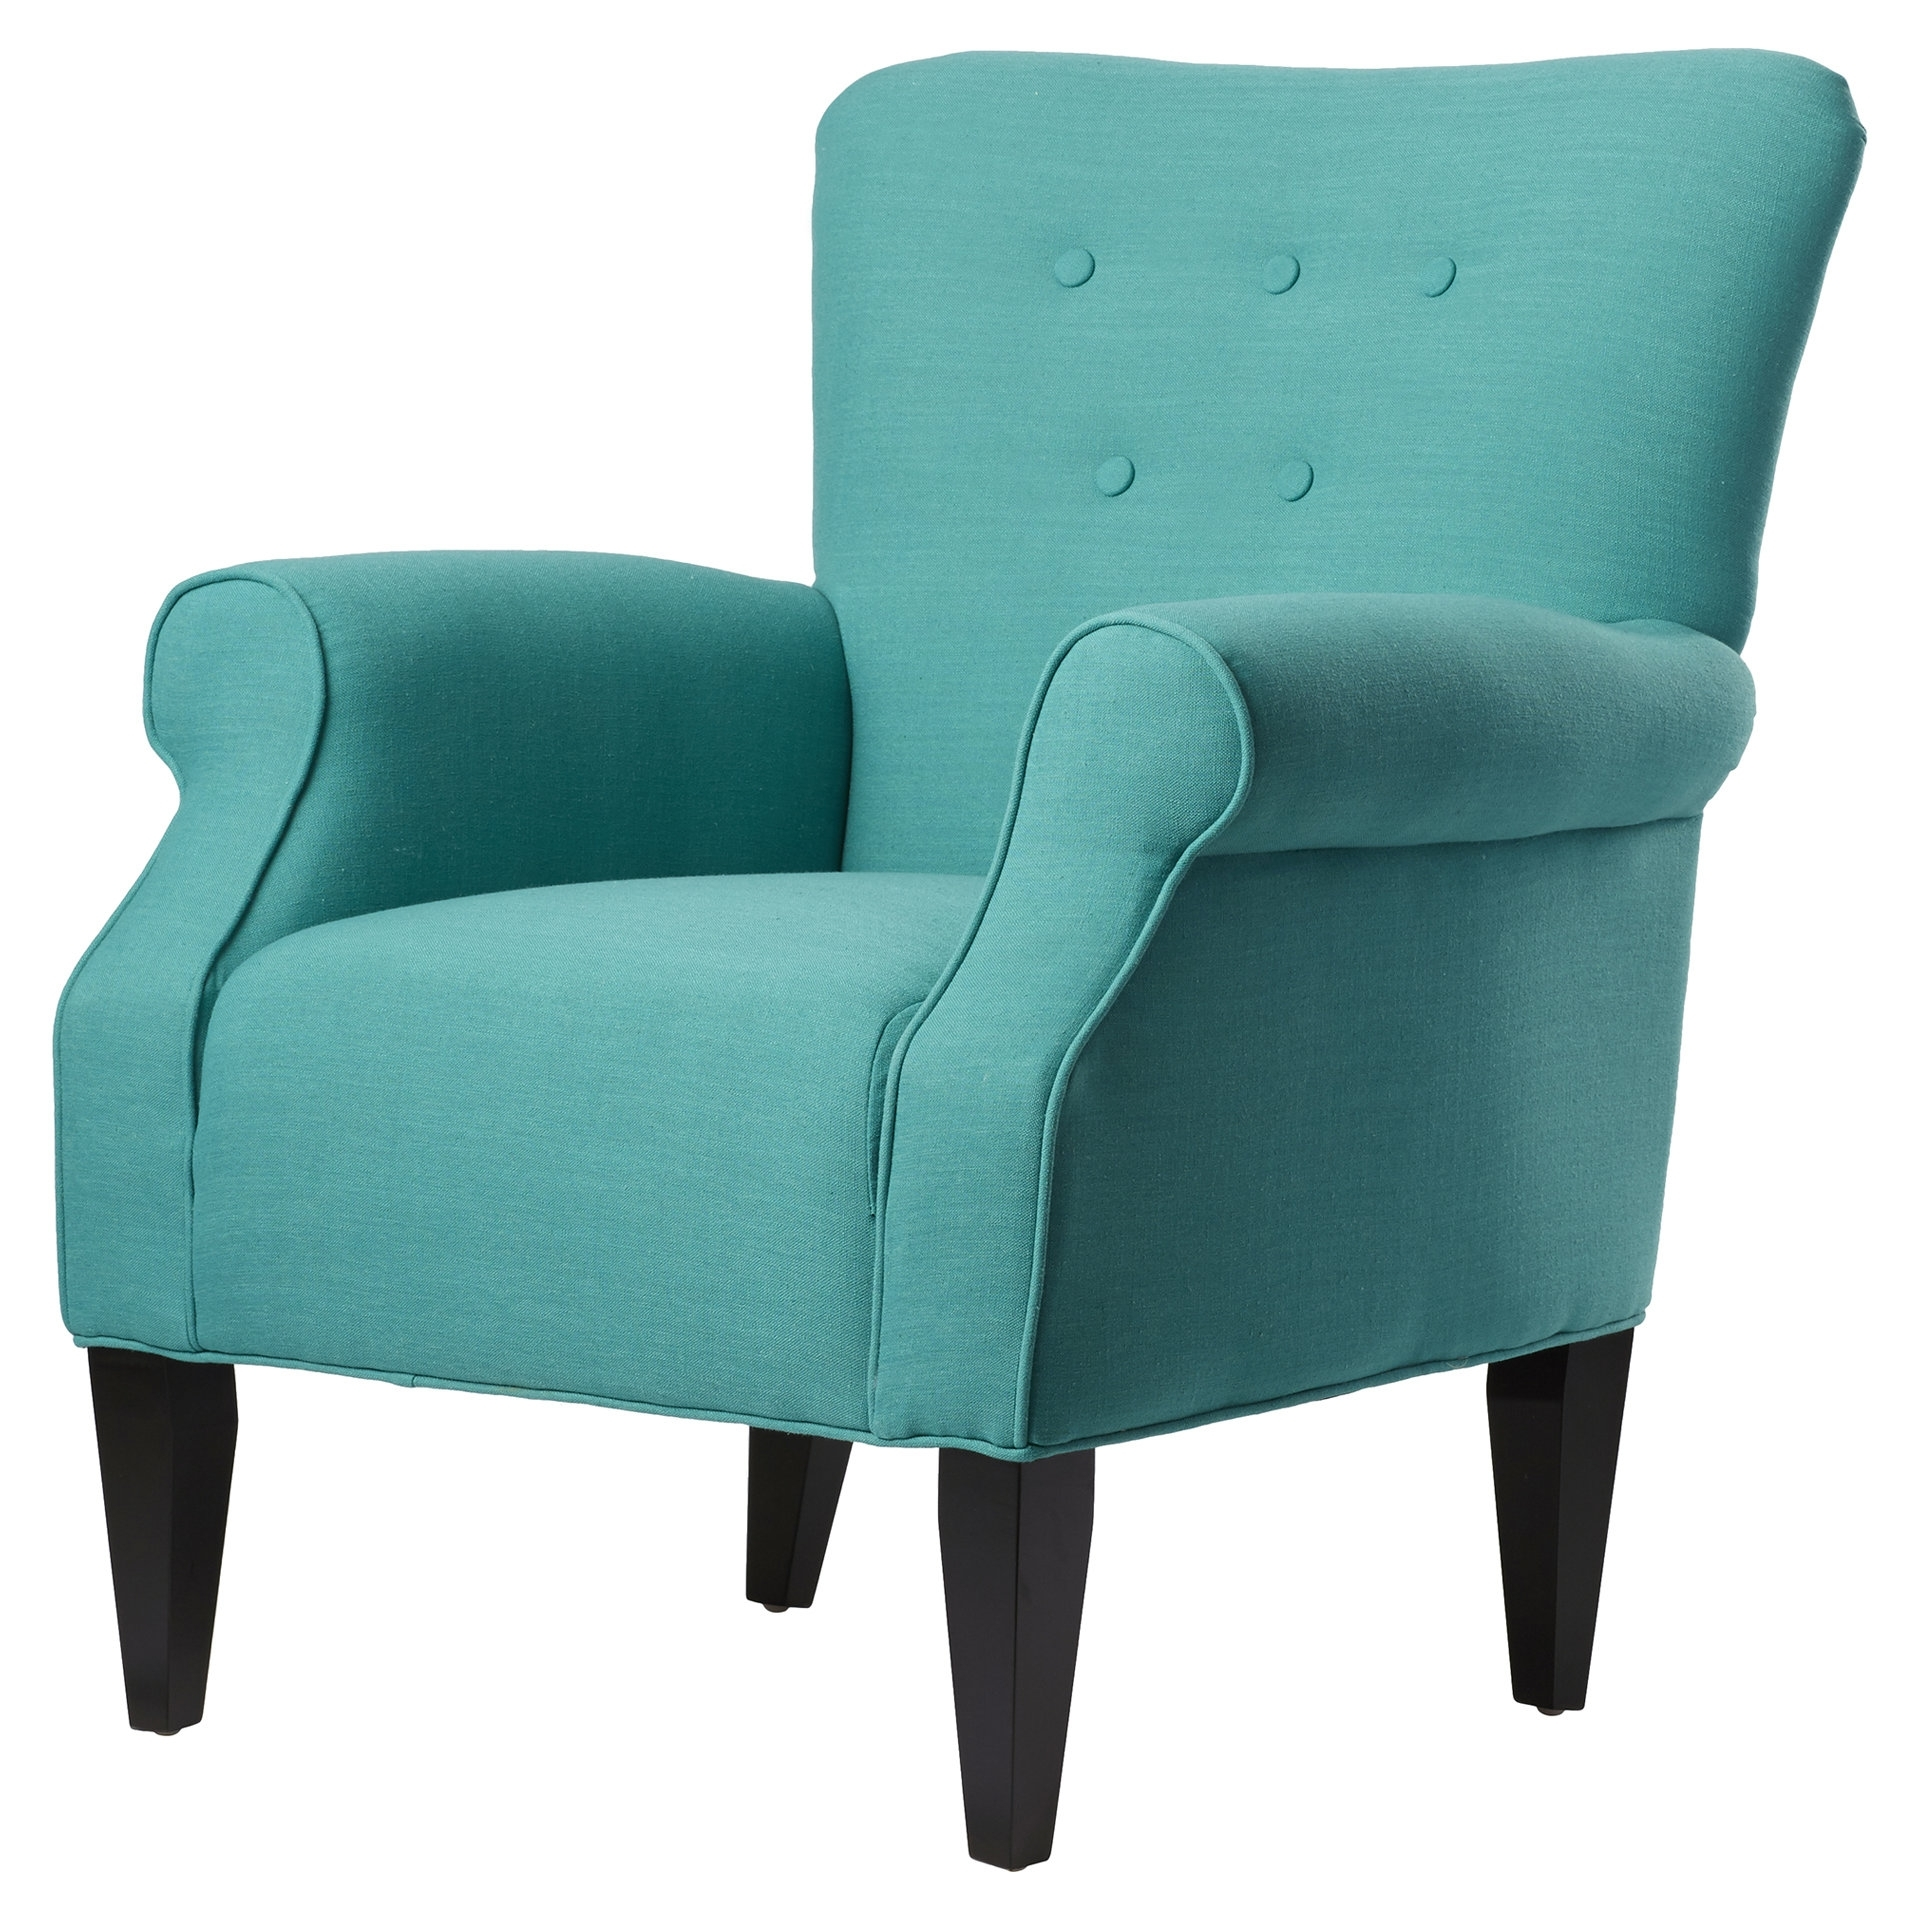 Joss & Main With Regard To Well Liked Mallard Side Chairs With Cushion (View 16 of 20)